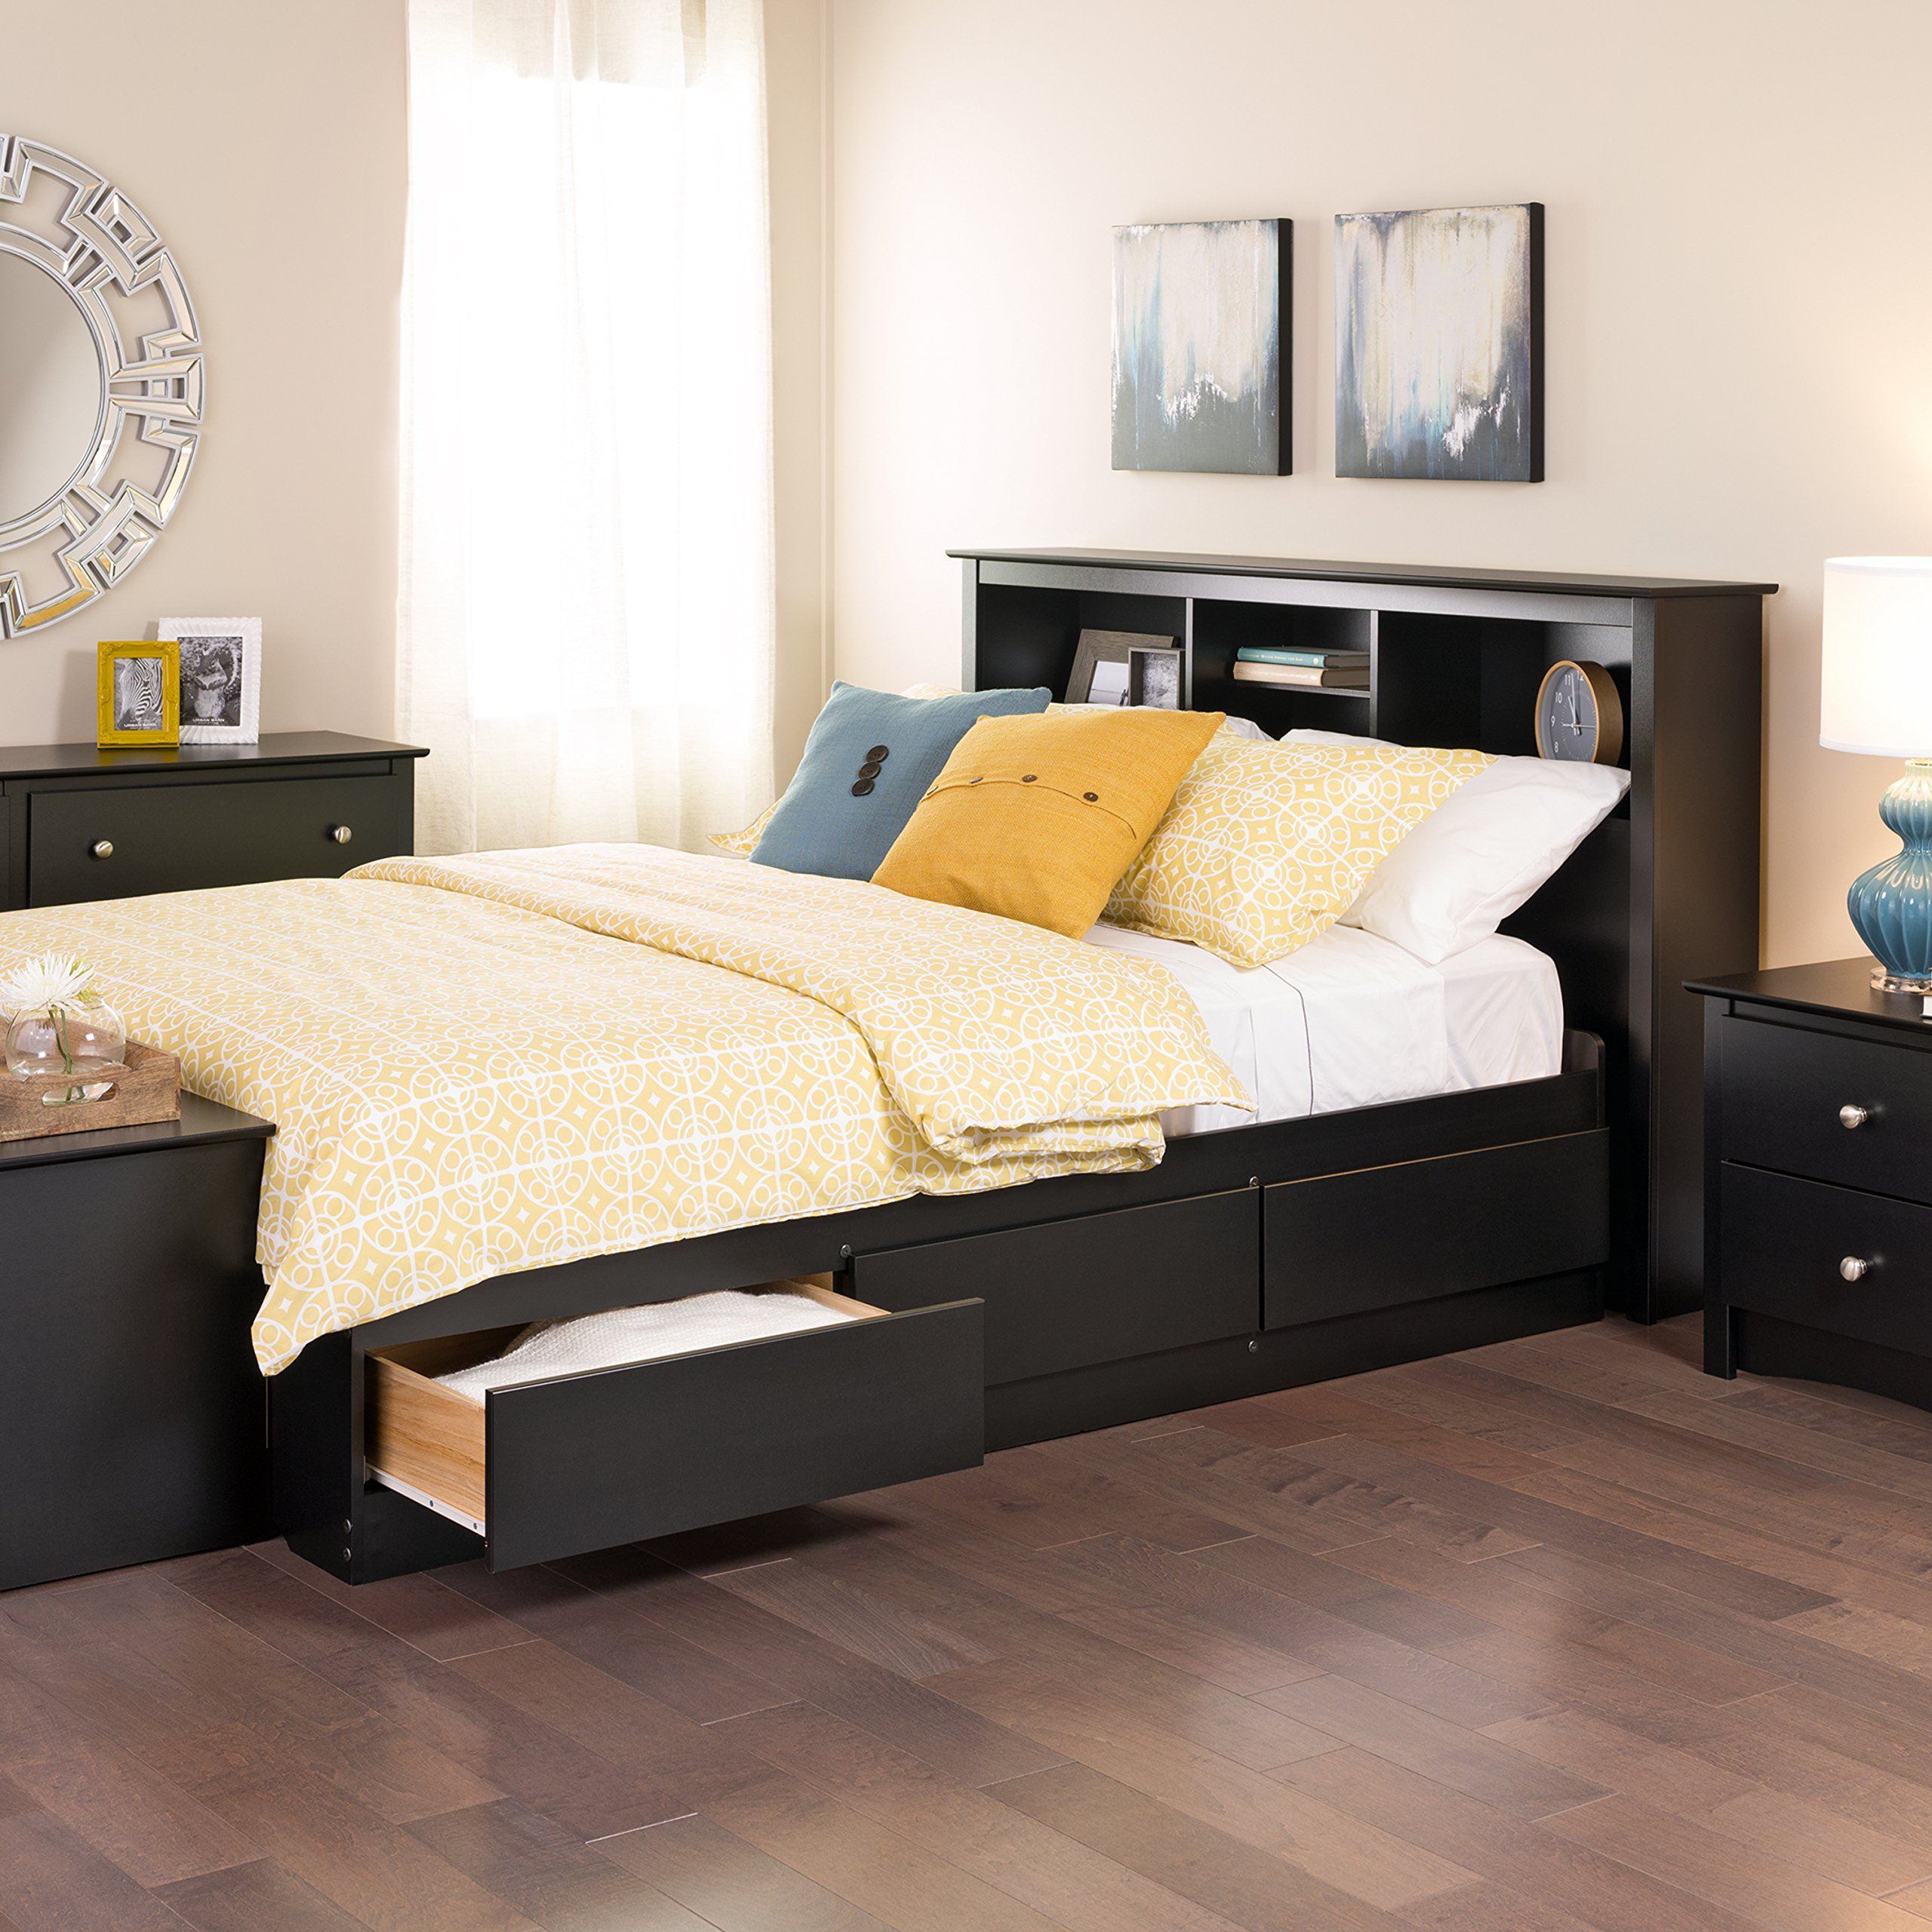 Prepac sonoma black queen platform storage bed with 6 - Modern queen bed with storage ...